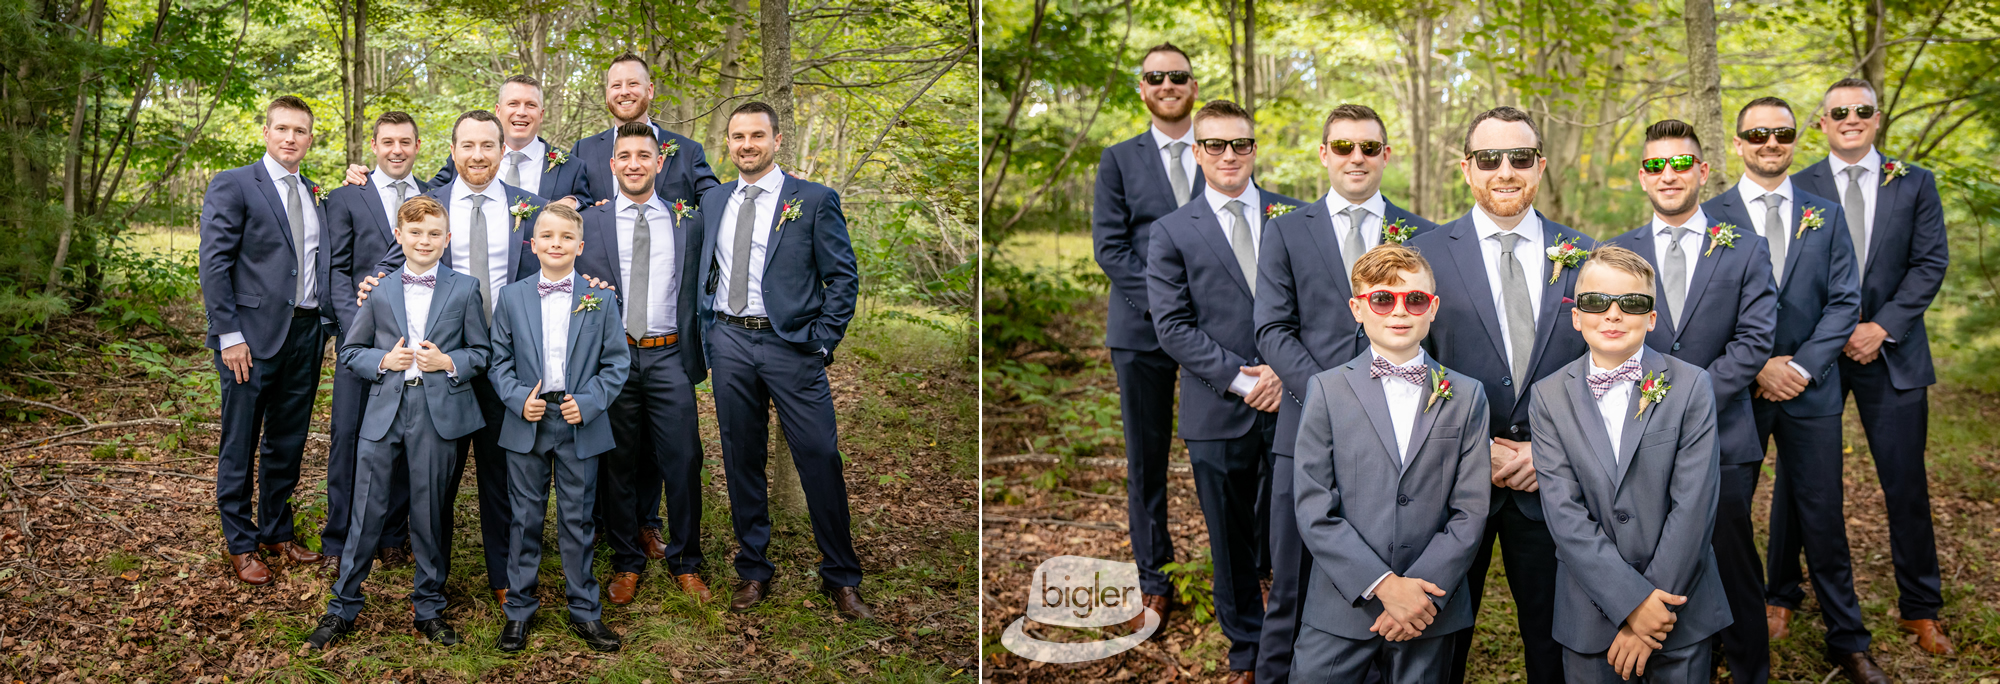 20180914_-_06_-_Jess_and_Aram_Greywacke_Meadows_Wedding